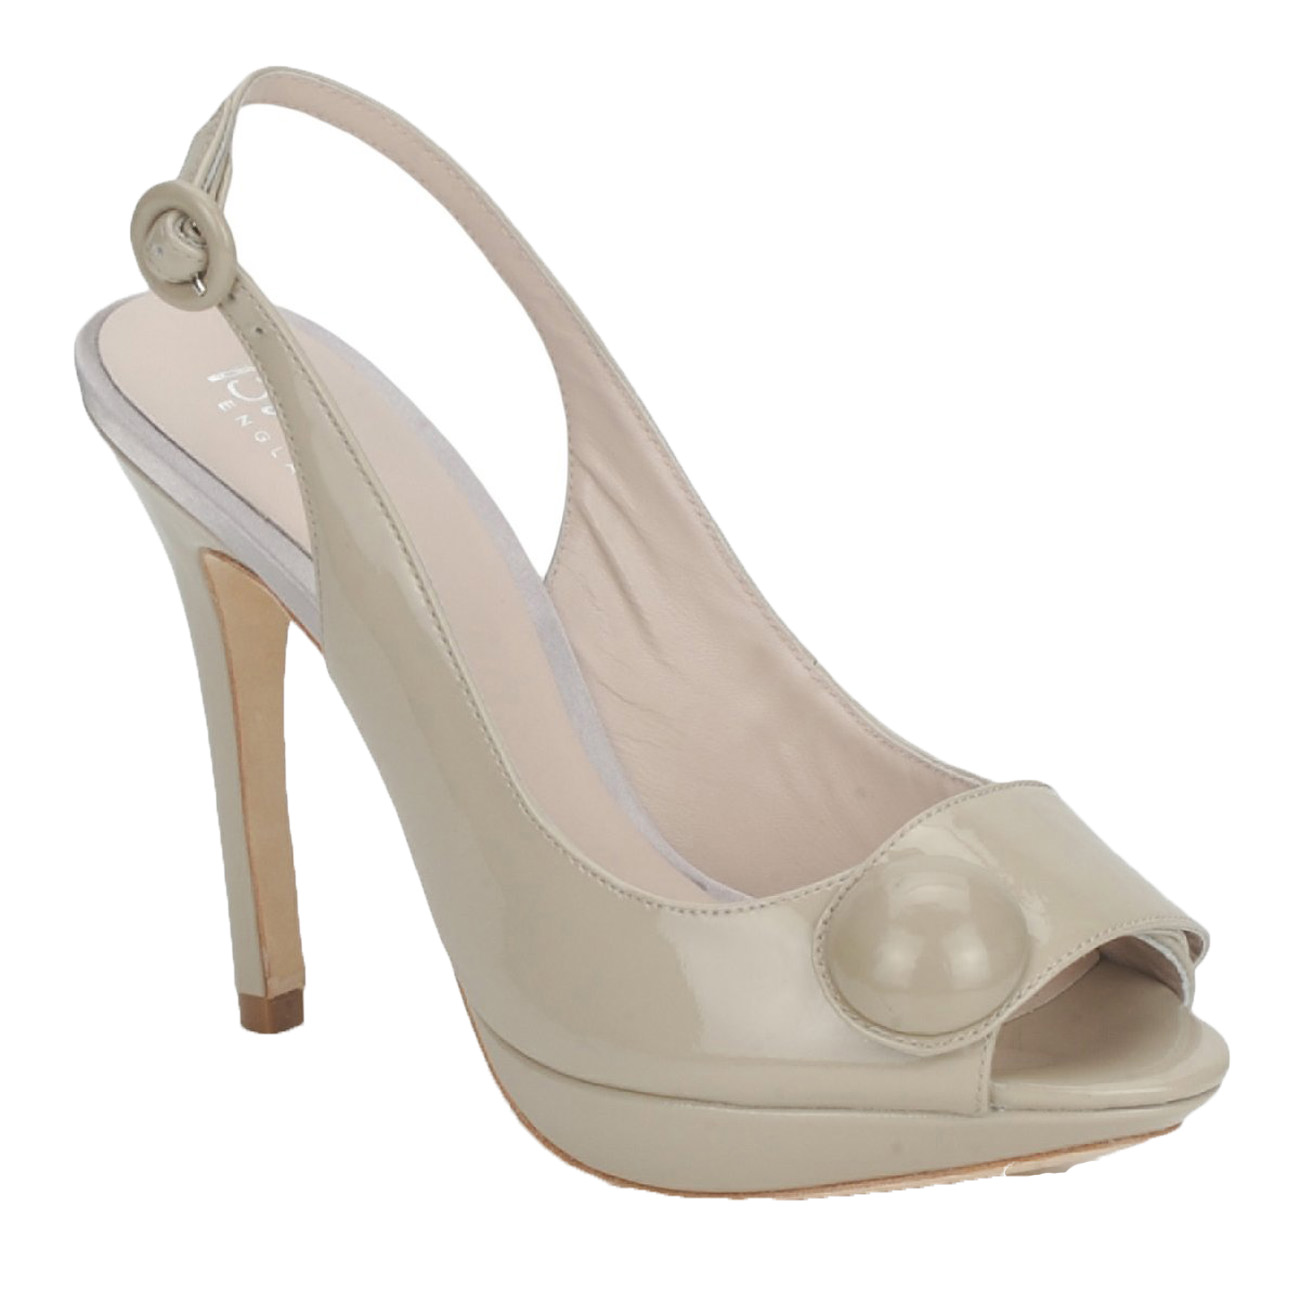 Amelie Nude details about bourne amelie shoes 3-8 rrp125 patent nude dove peeptoe  slingback style sandals